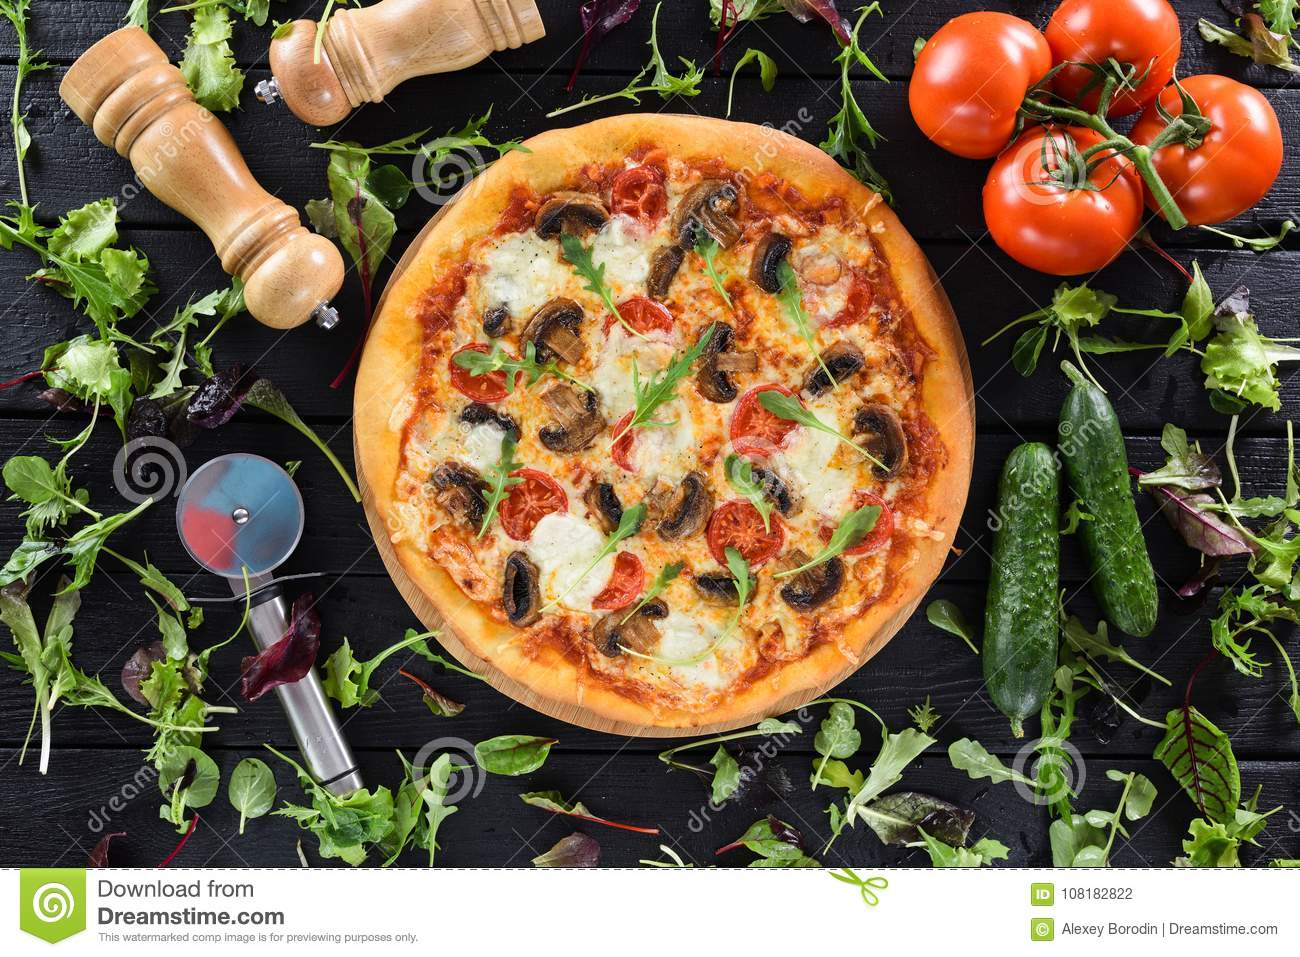 Flatlay of healthy vegetable mushroom pizza served with fresh vegetables, greens, pizza cutter and salt shaker on black background